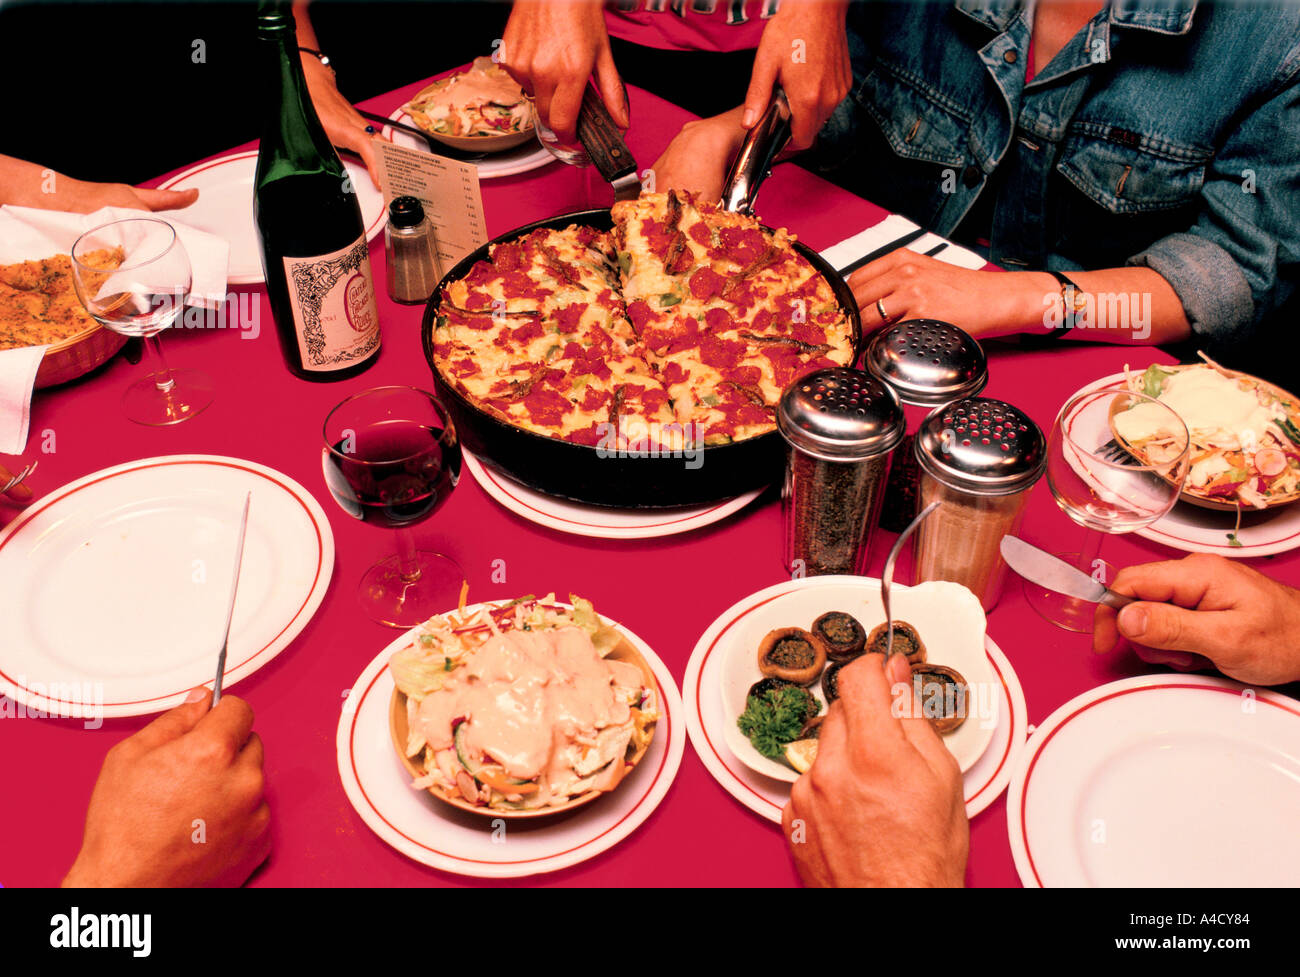 The Chicago Pizza Pie Factory London Uk Stock Photo